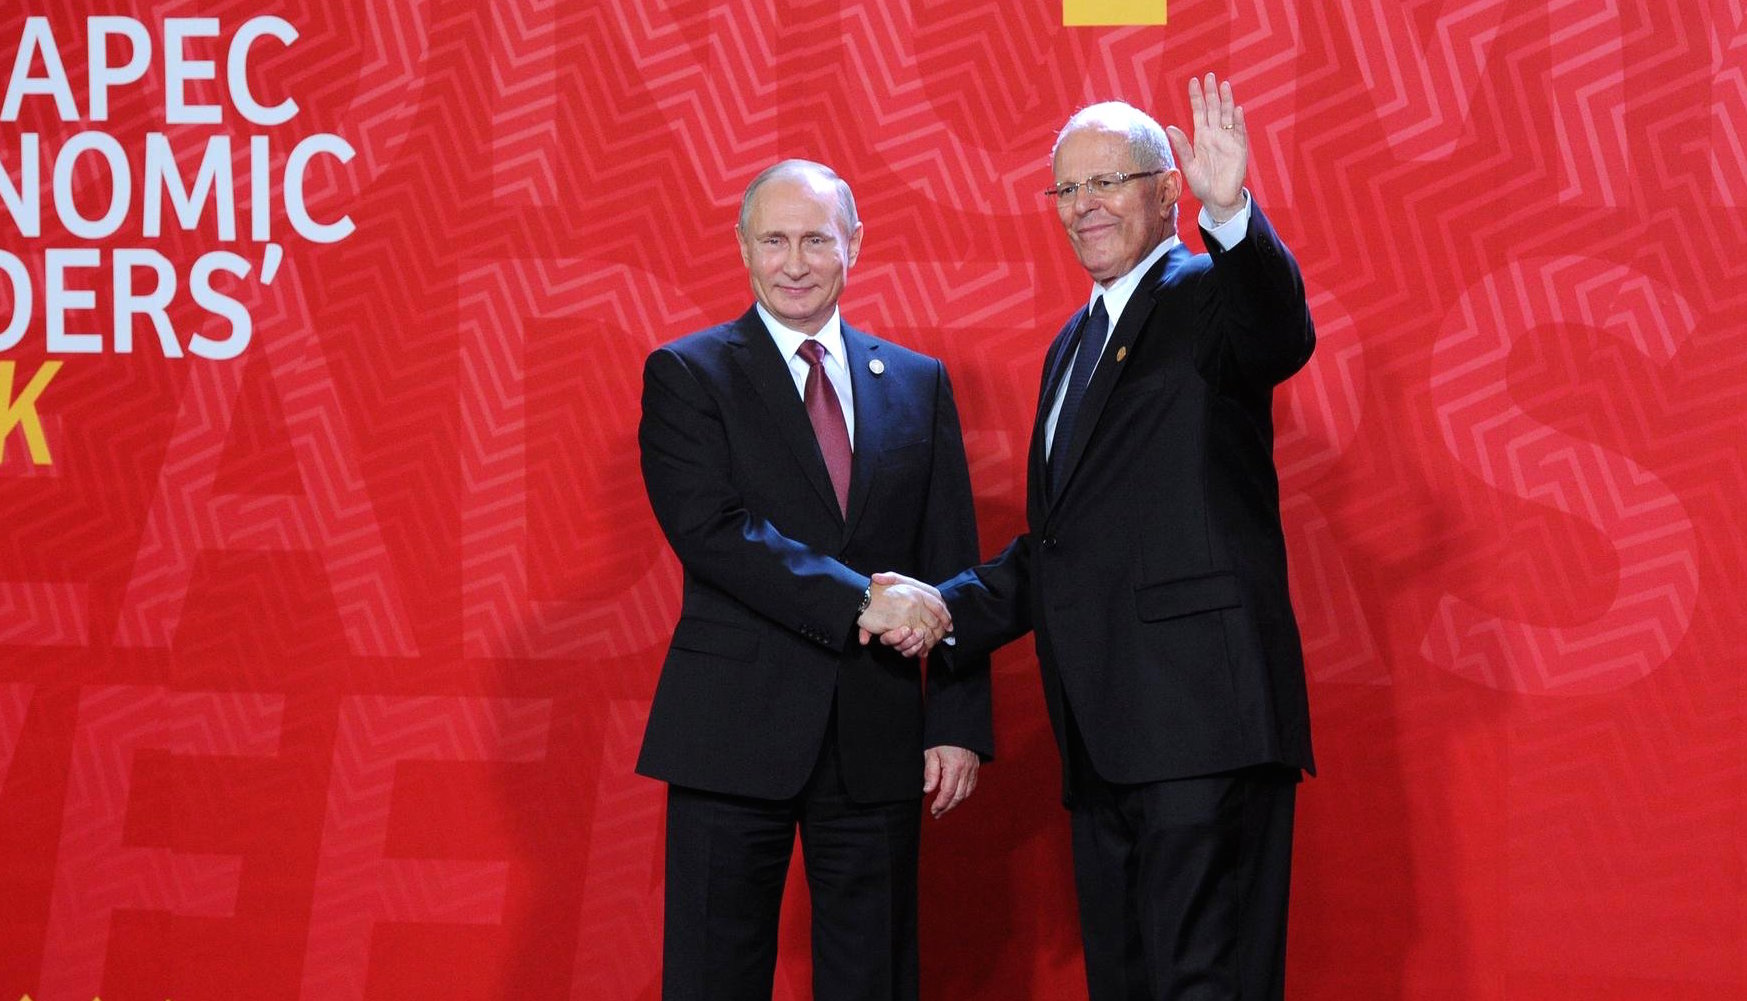 Peru Hosts APEC Summit